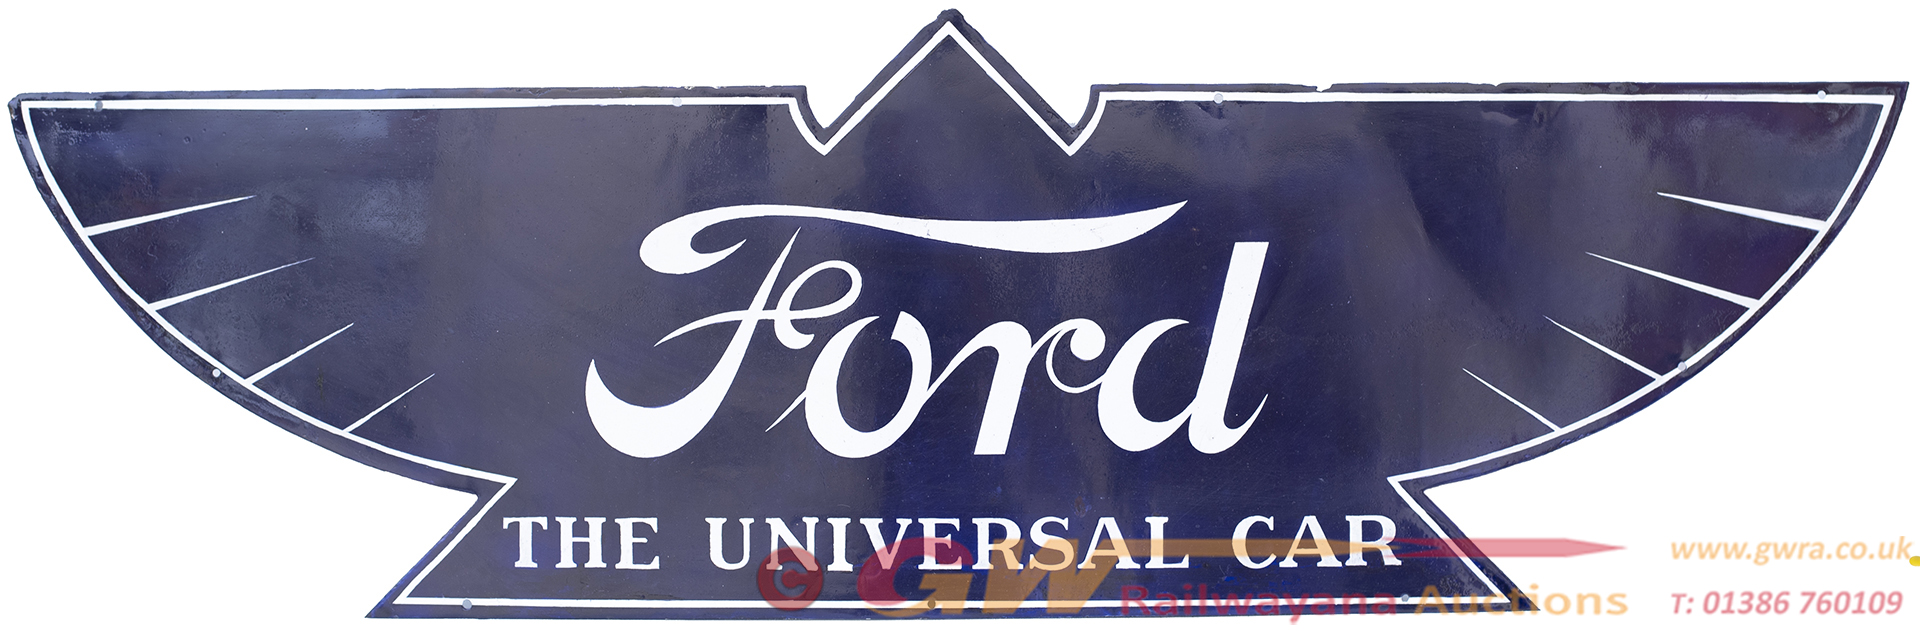 Advertising Enamel Sign FORD THE UNIVERSAL CAR